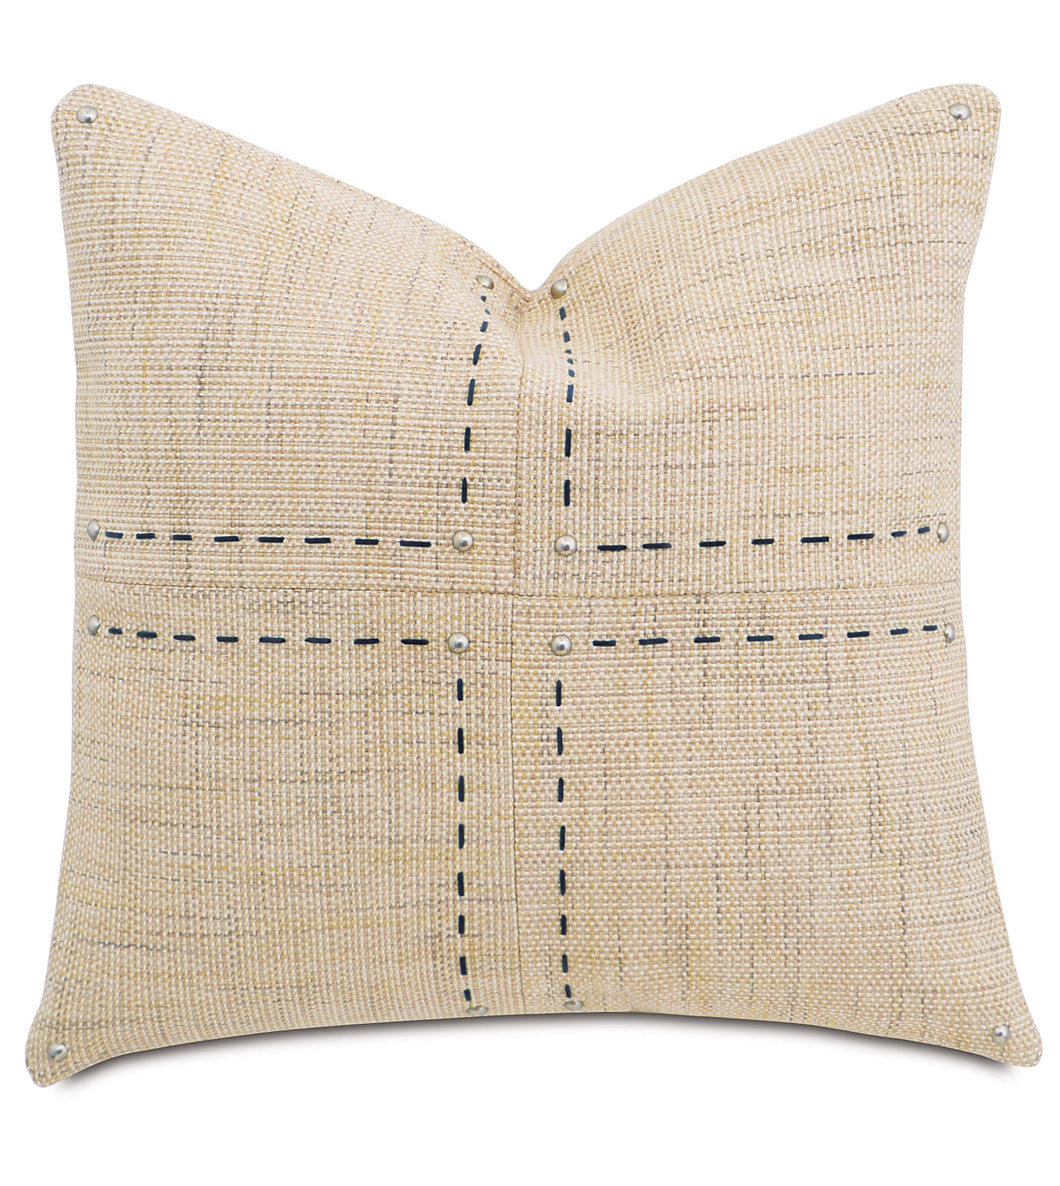 Champagne Mountain Resort Geometric Studded Throw Pillow Hand Stitched 22